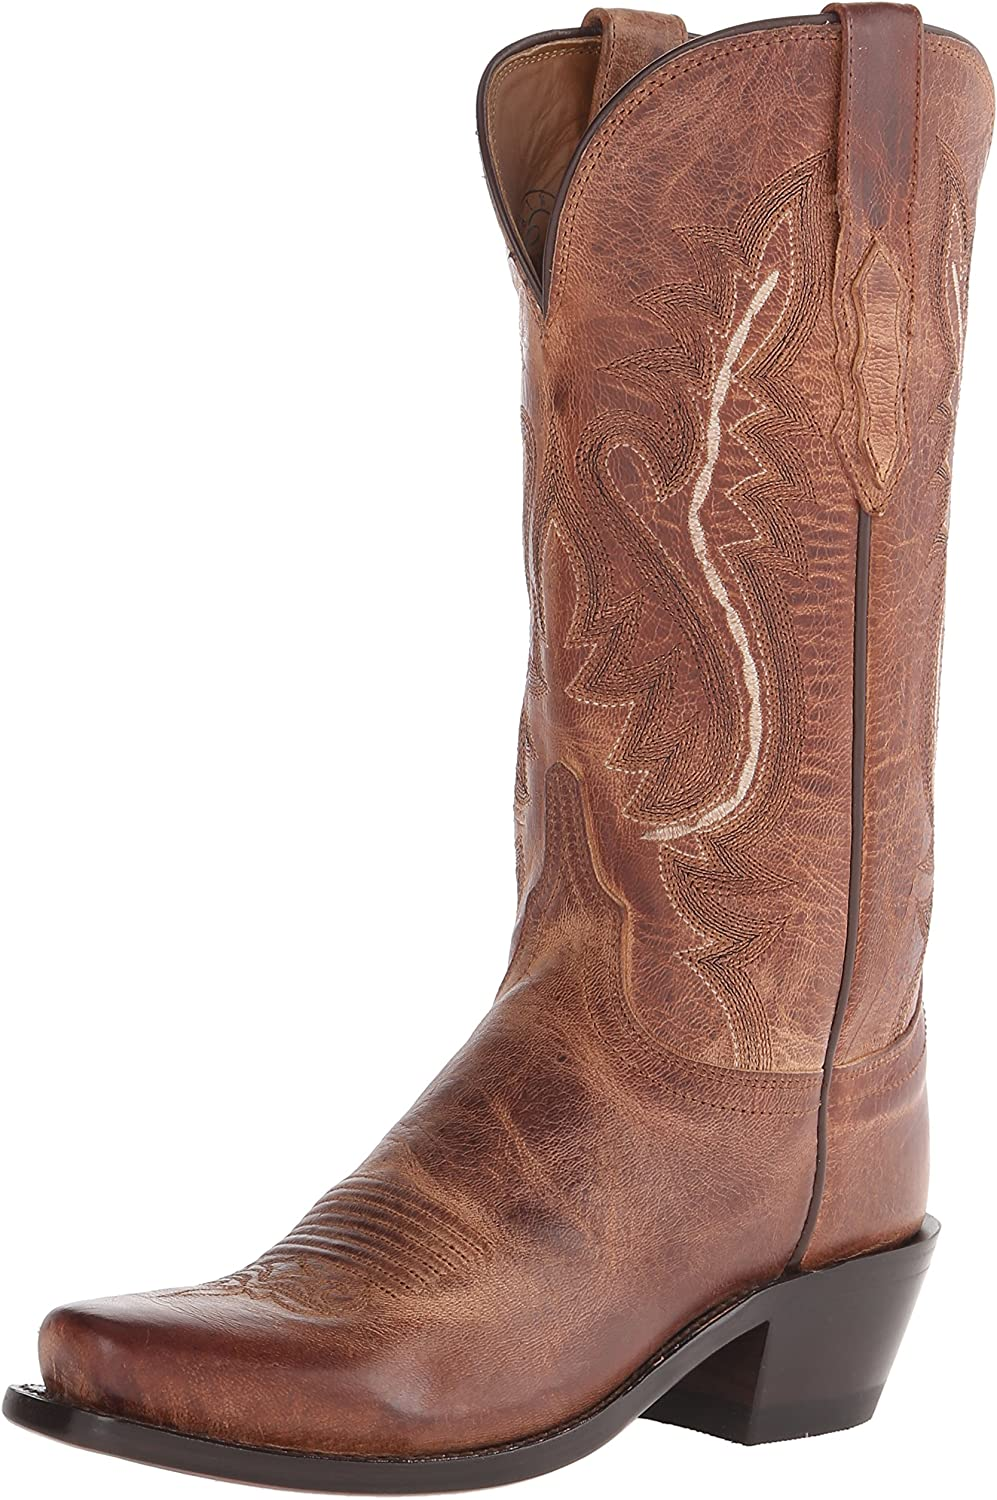 Lucchese Bootmaker Womens Cassidy-tan Mad Dog Goat Riding Boot